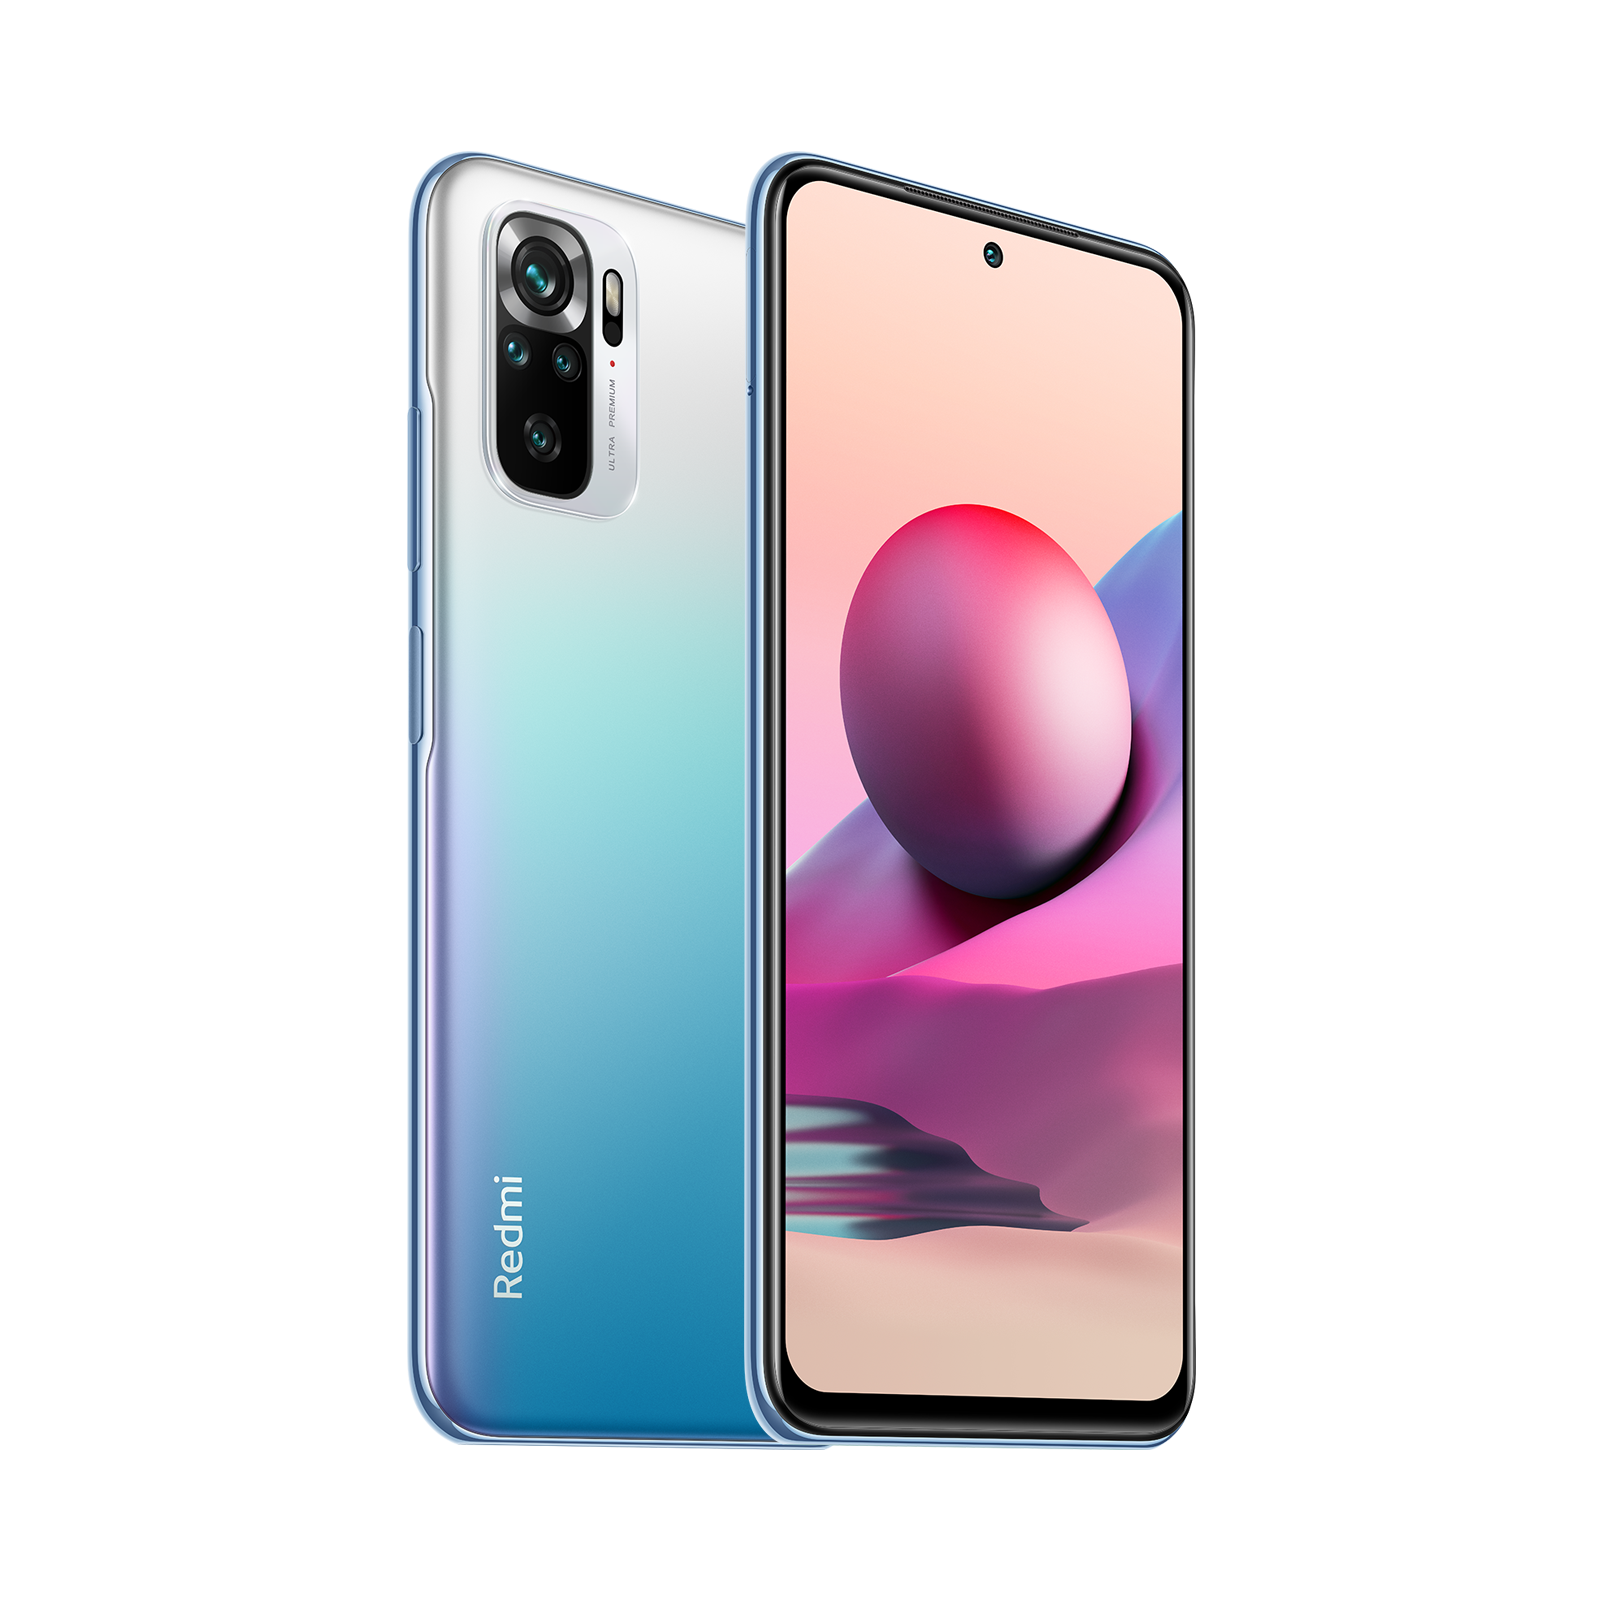 Global Version Xiaomi Redmi Note 10S Smartphone 6GB 64GB 64MP Quad Camera Helio G95 AMOLED DotDisplay 33W Fast Charge With NFC enlarge